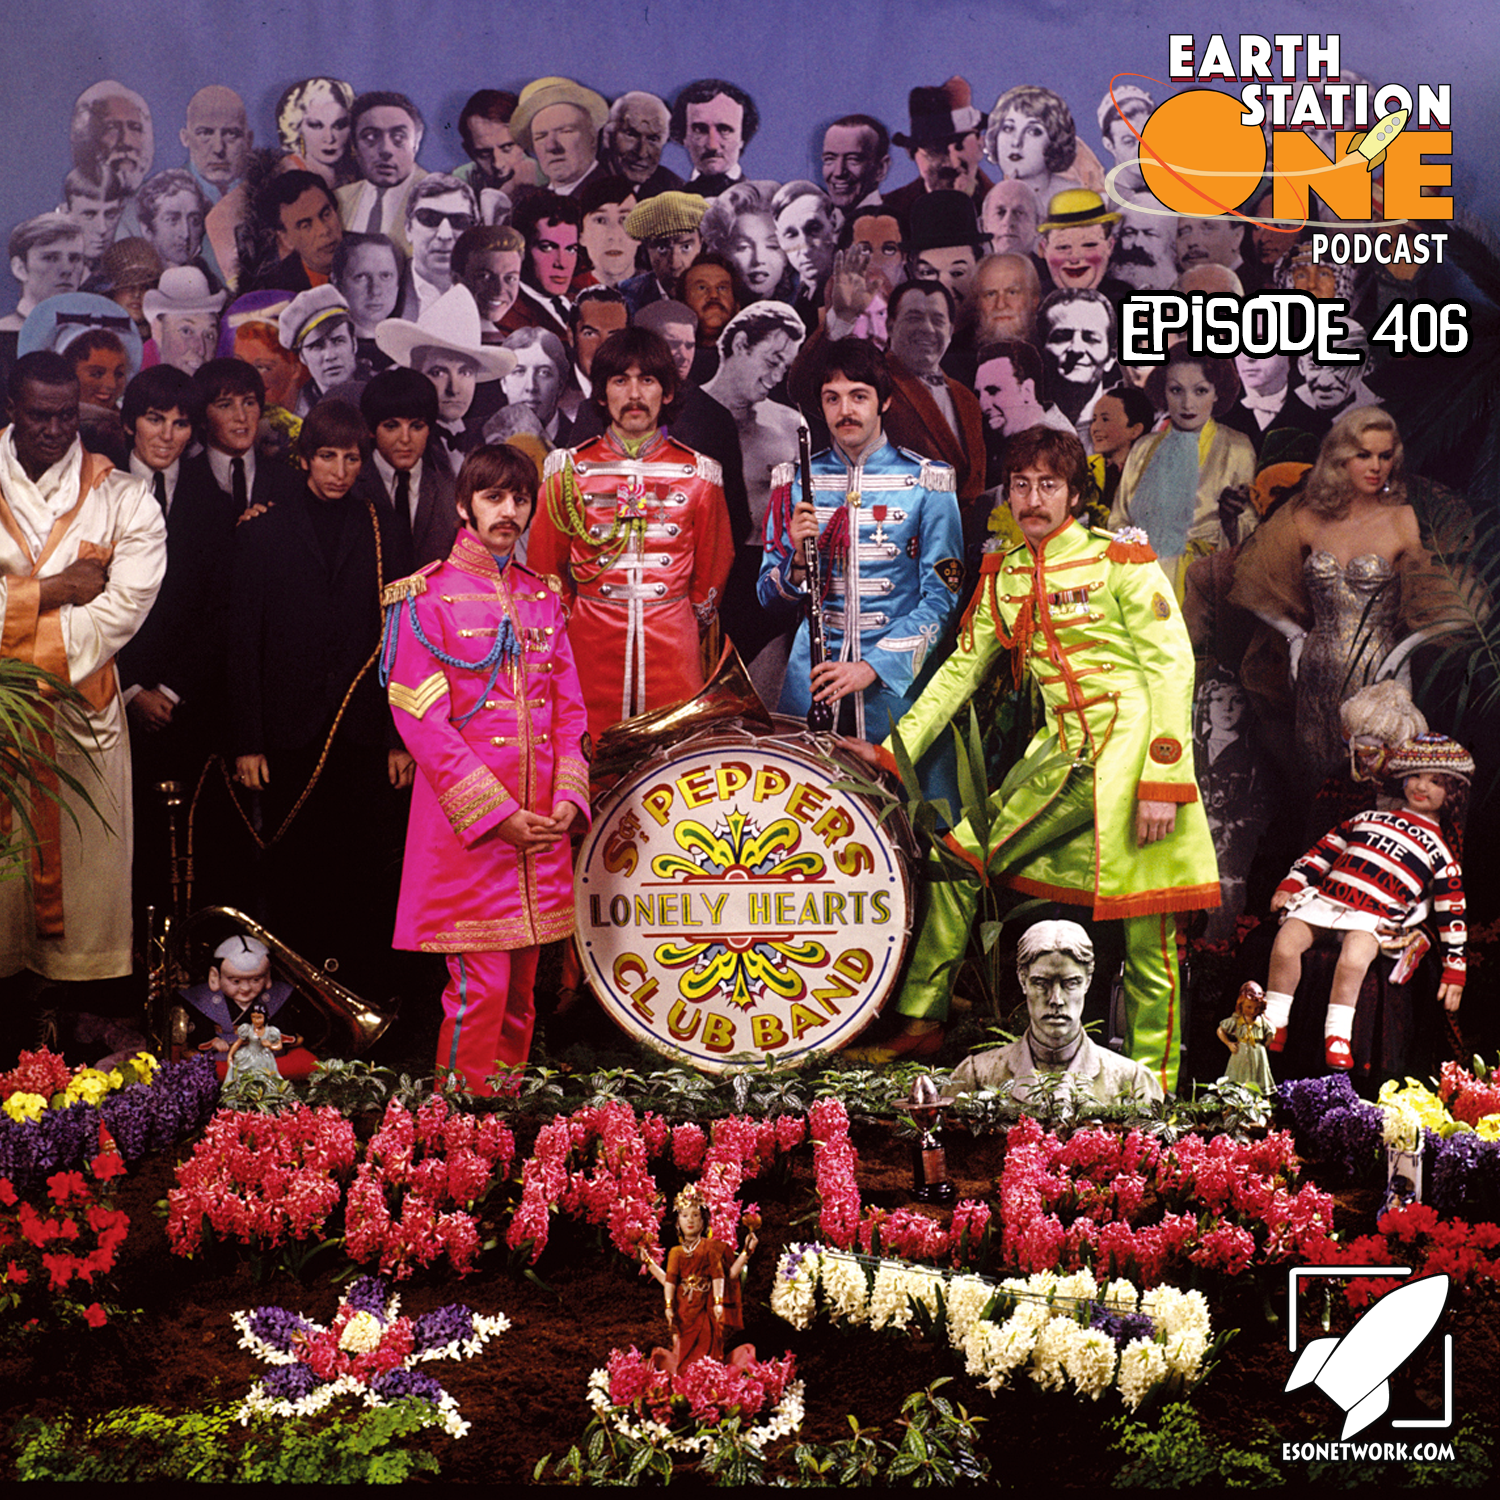 Earth Station One Ep 406 - Meet The Beatles